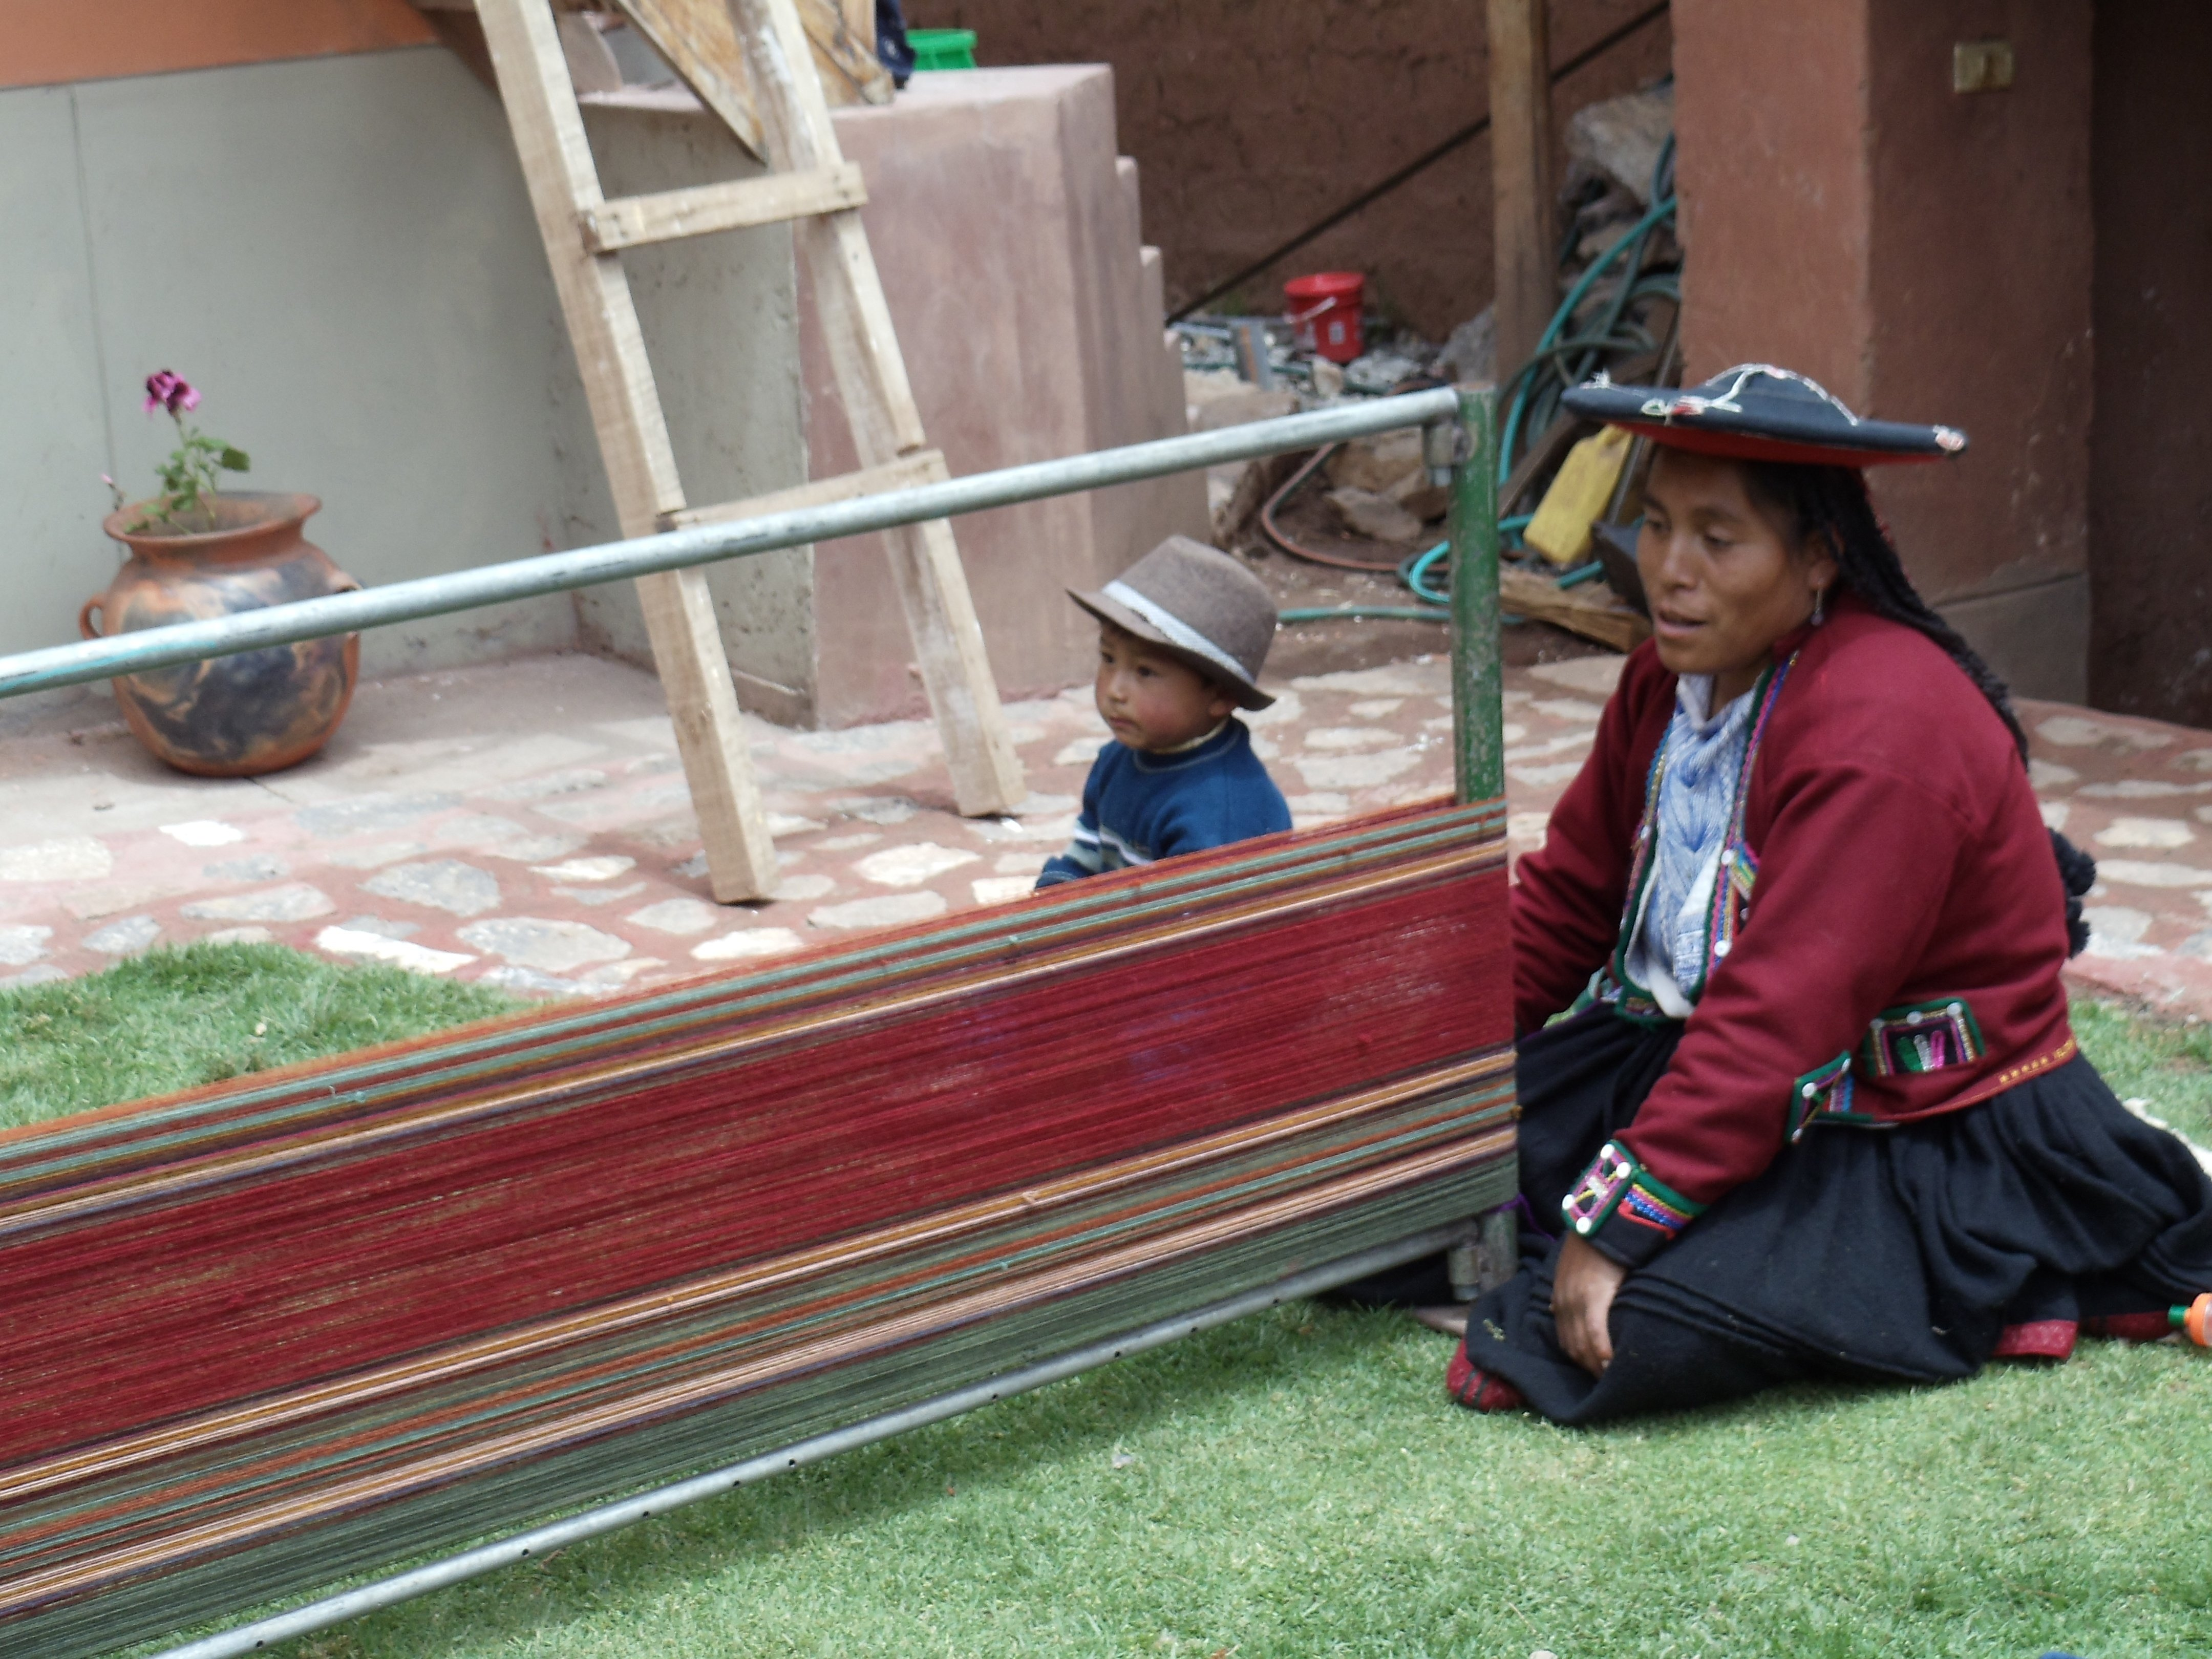 Family Vacation South America